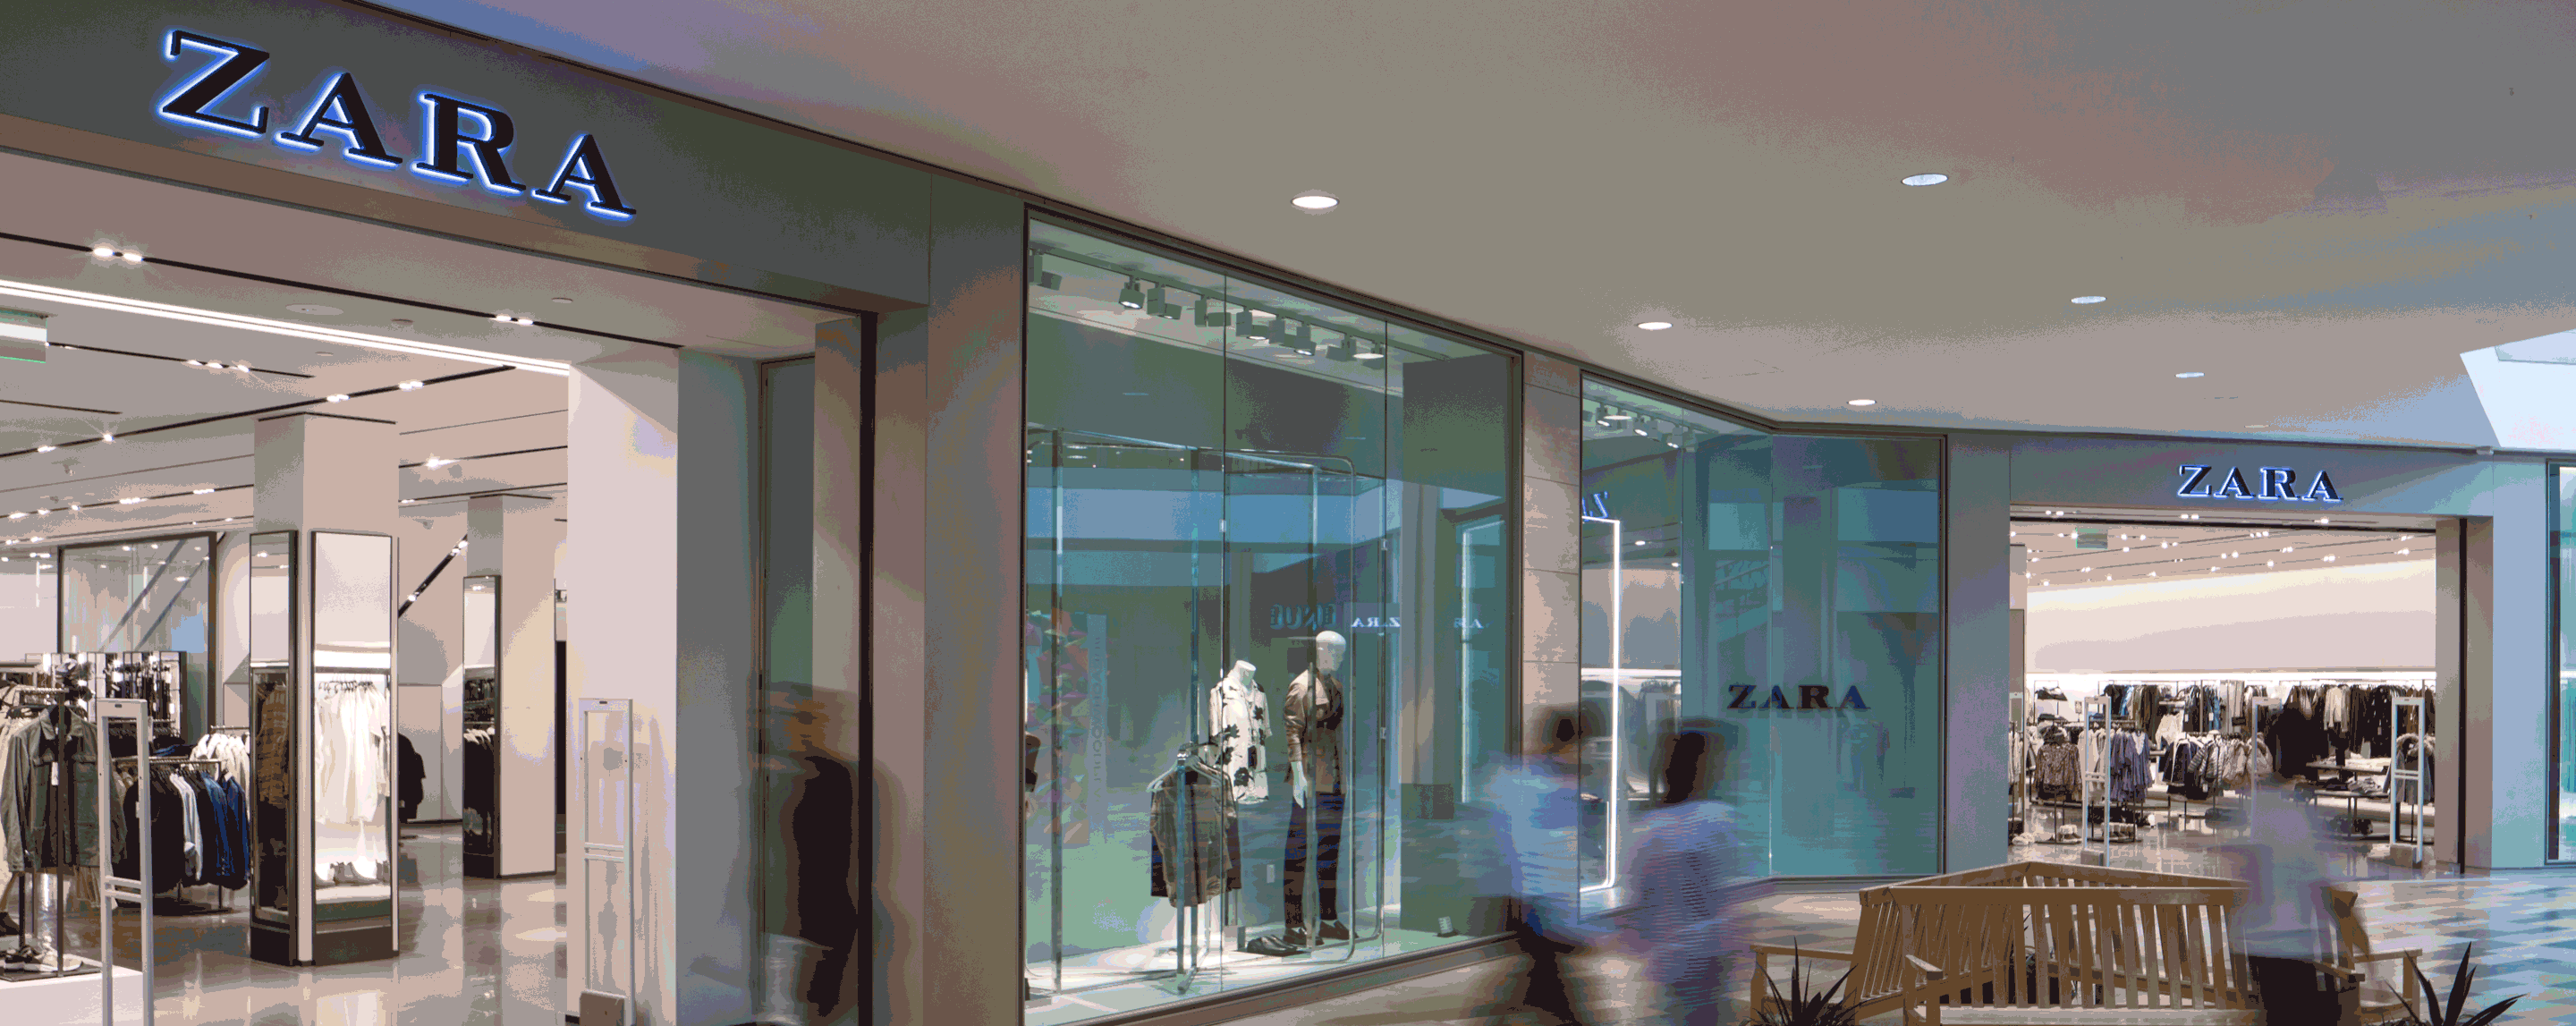 A picture of the Zara storefront with people moving in the foreground.